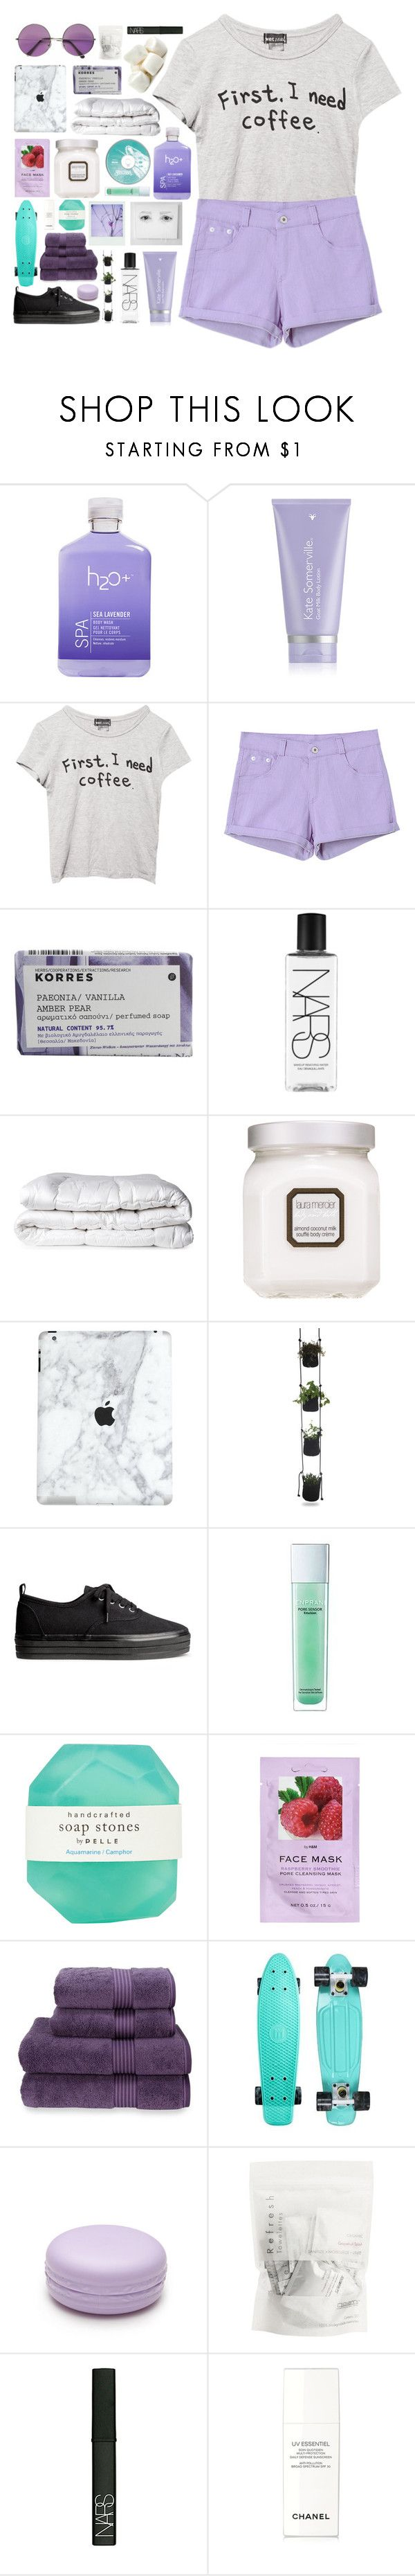 """""""euphoria"""" by cjcstyle ❤ liked on Polyvore featuring H2O+, Kate Somerville, Wet Seal, Chicnova Fashion, Korres, NARS Cosmetics, Brinkhaus, Laura Mercier, H&M and Enprani"""